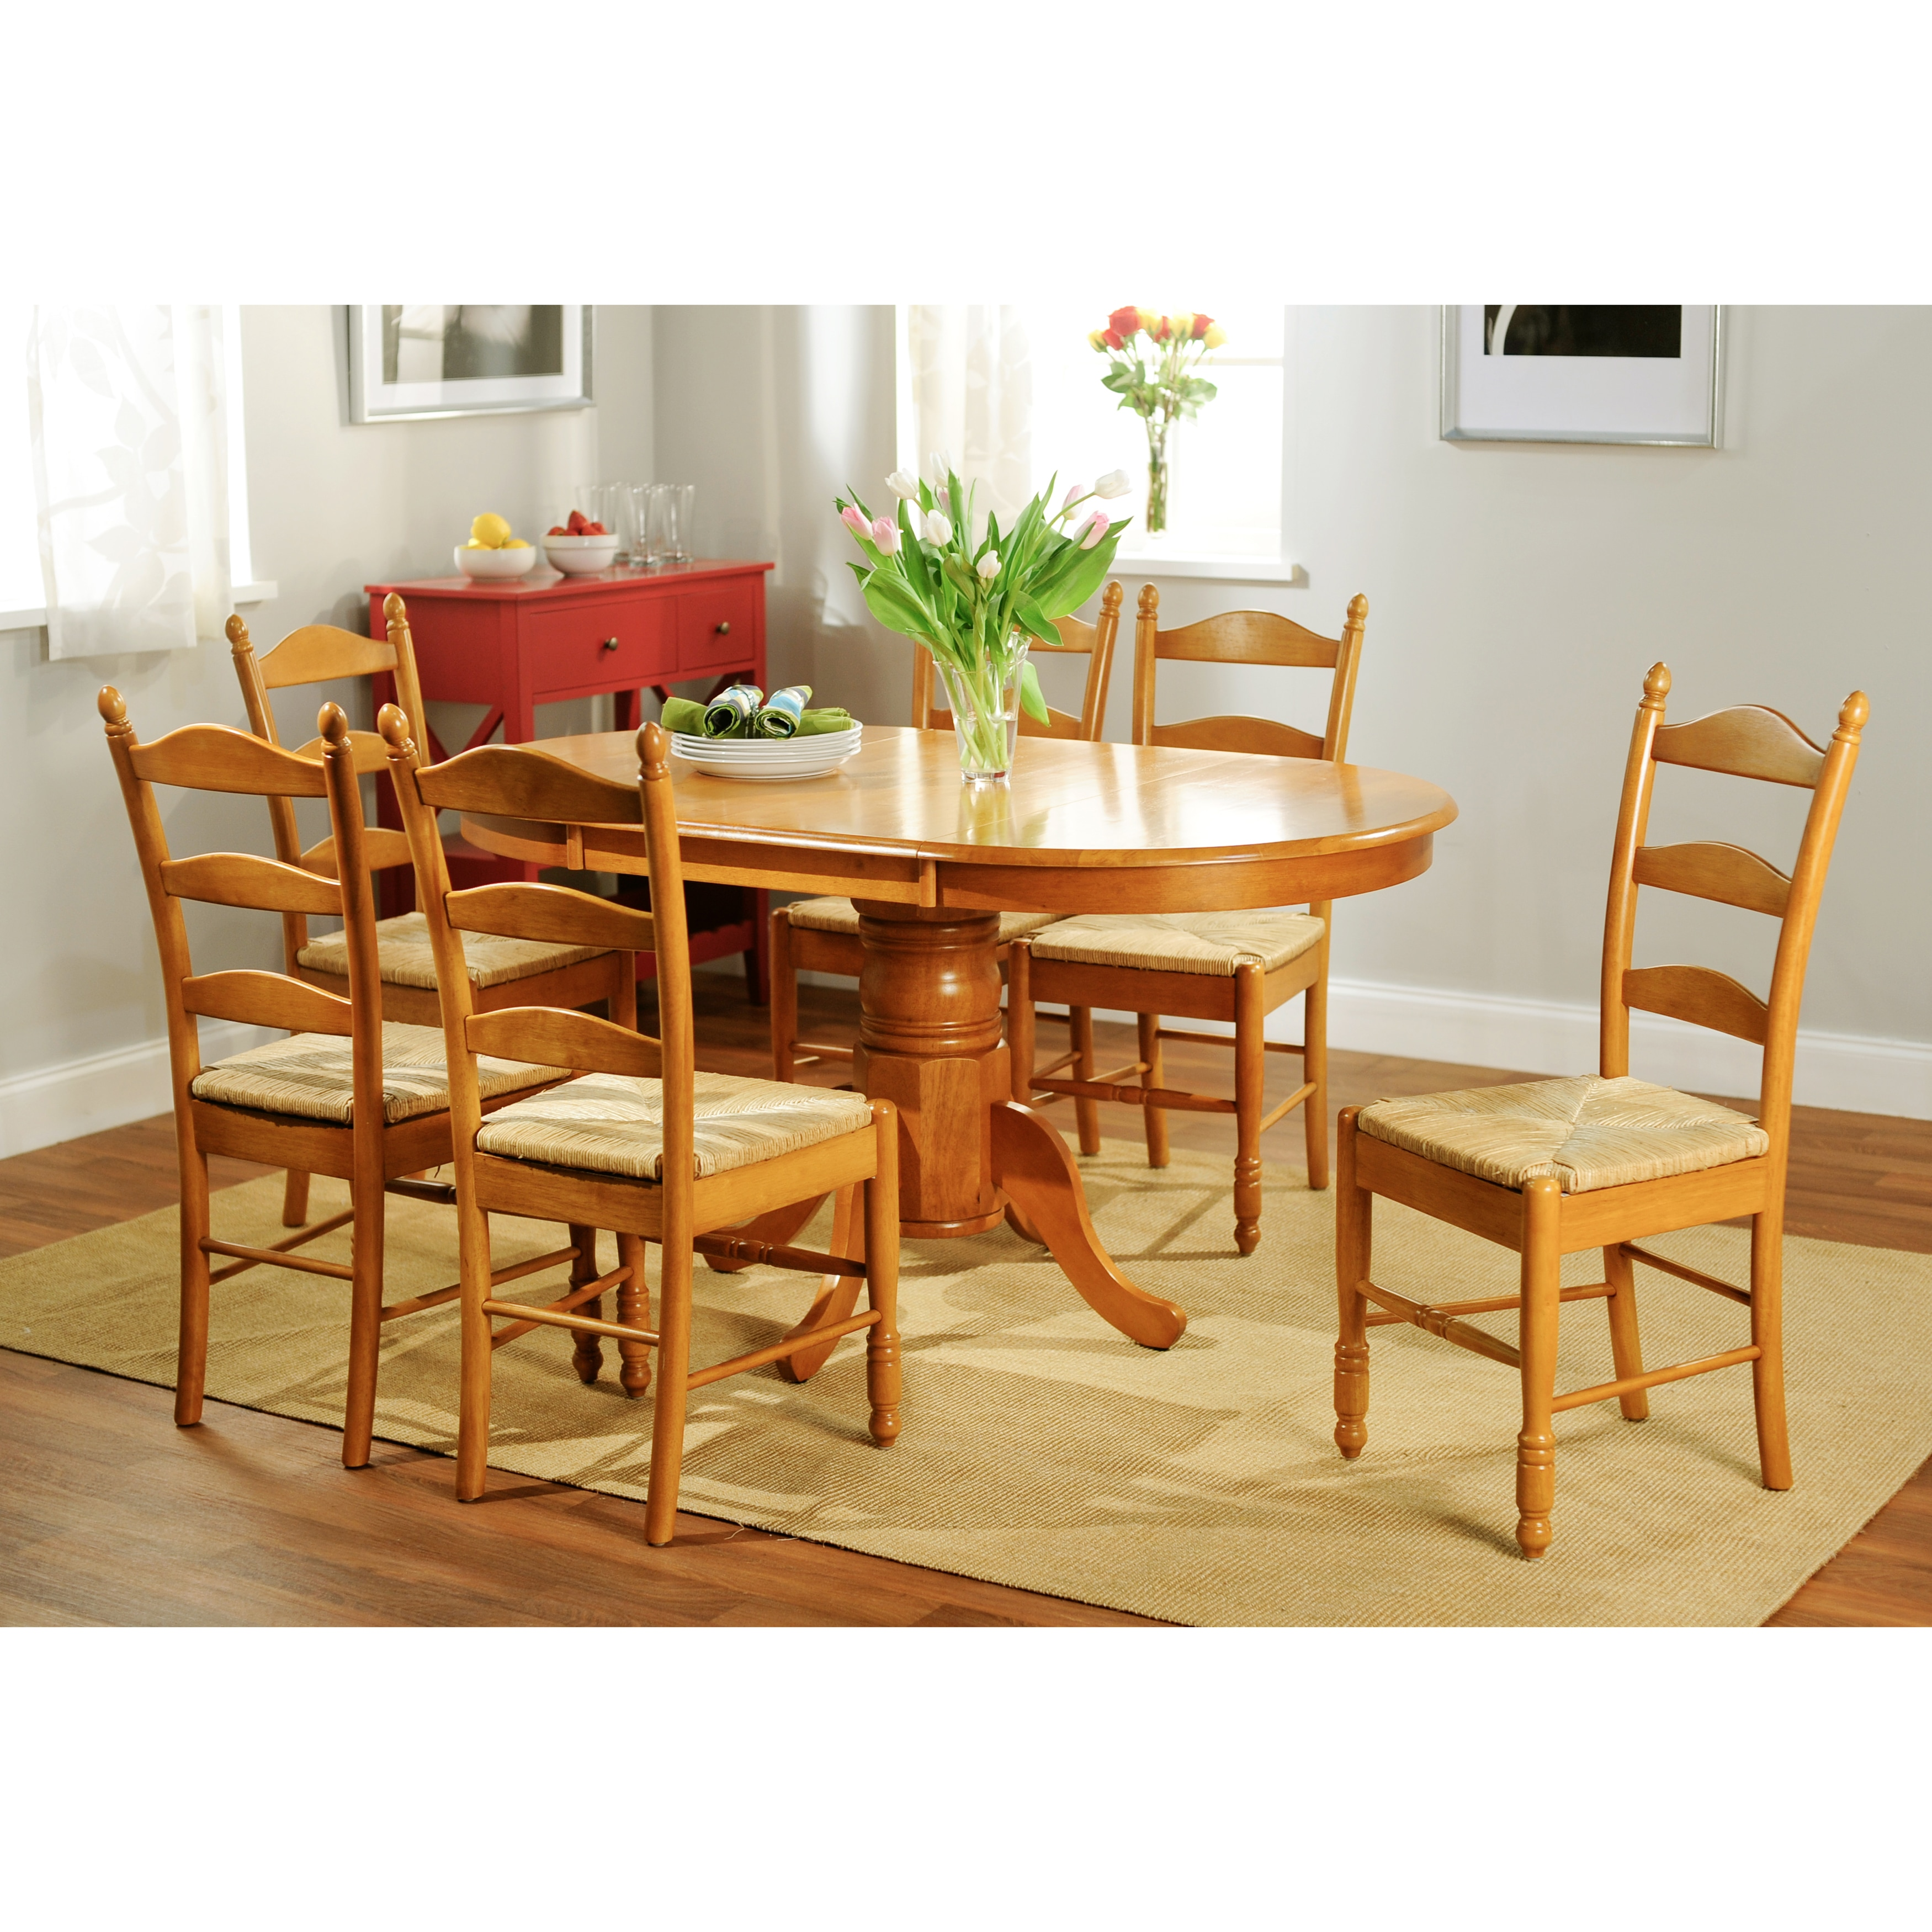 overstock com dining room chairs wood lawn chair shop simple living oak finish 7 piece ladderback